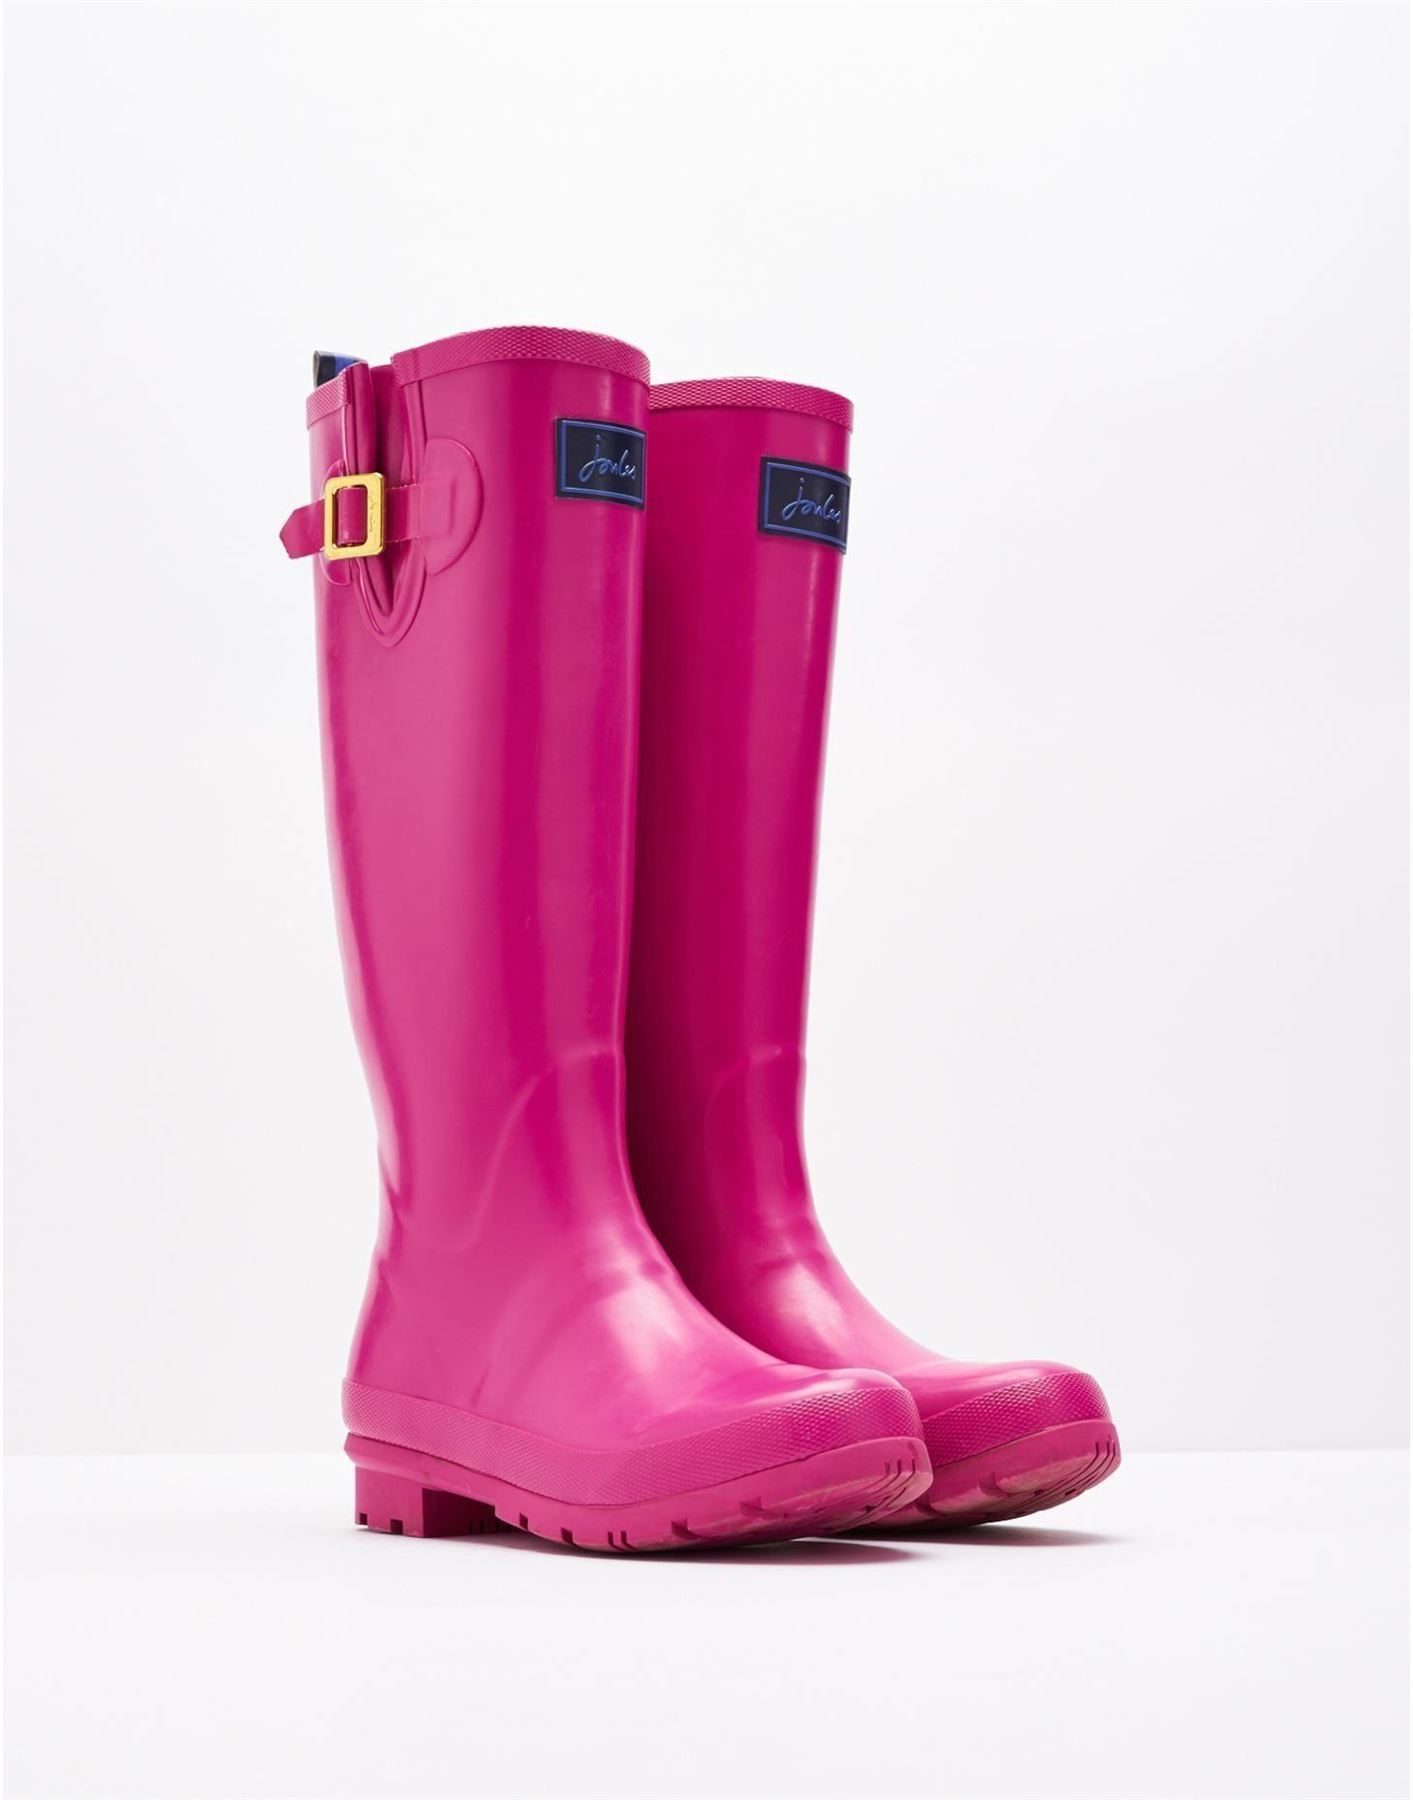 Simple Womens Joules Riding Wellies Tall Outdoor Yard Dog Walking Wellys Boots Size 3-8 | EBay